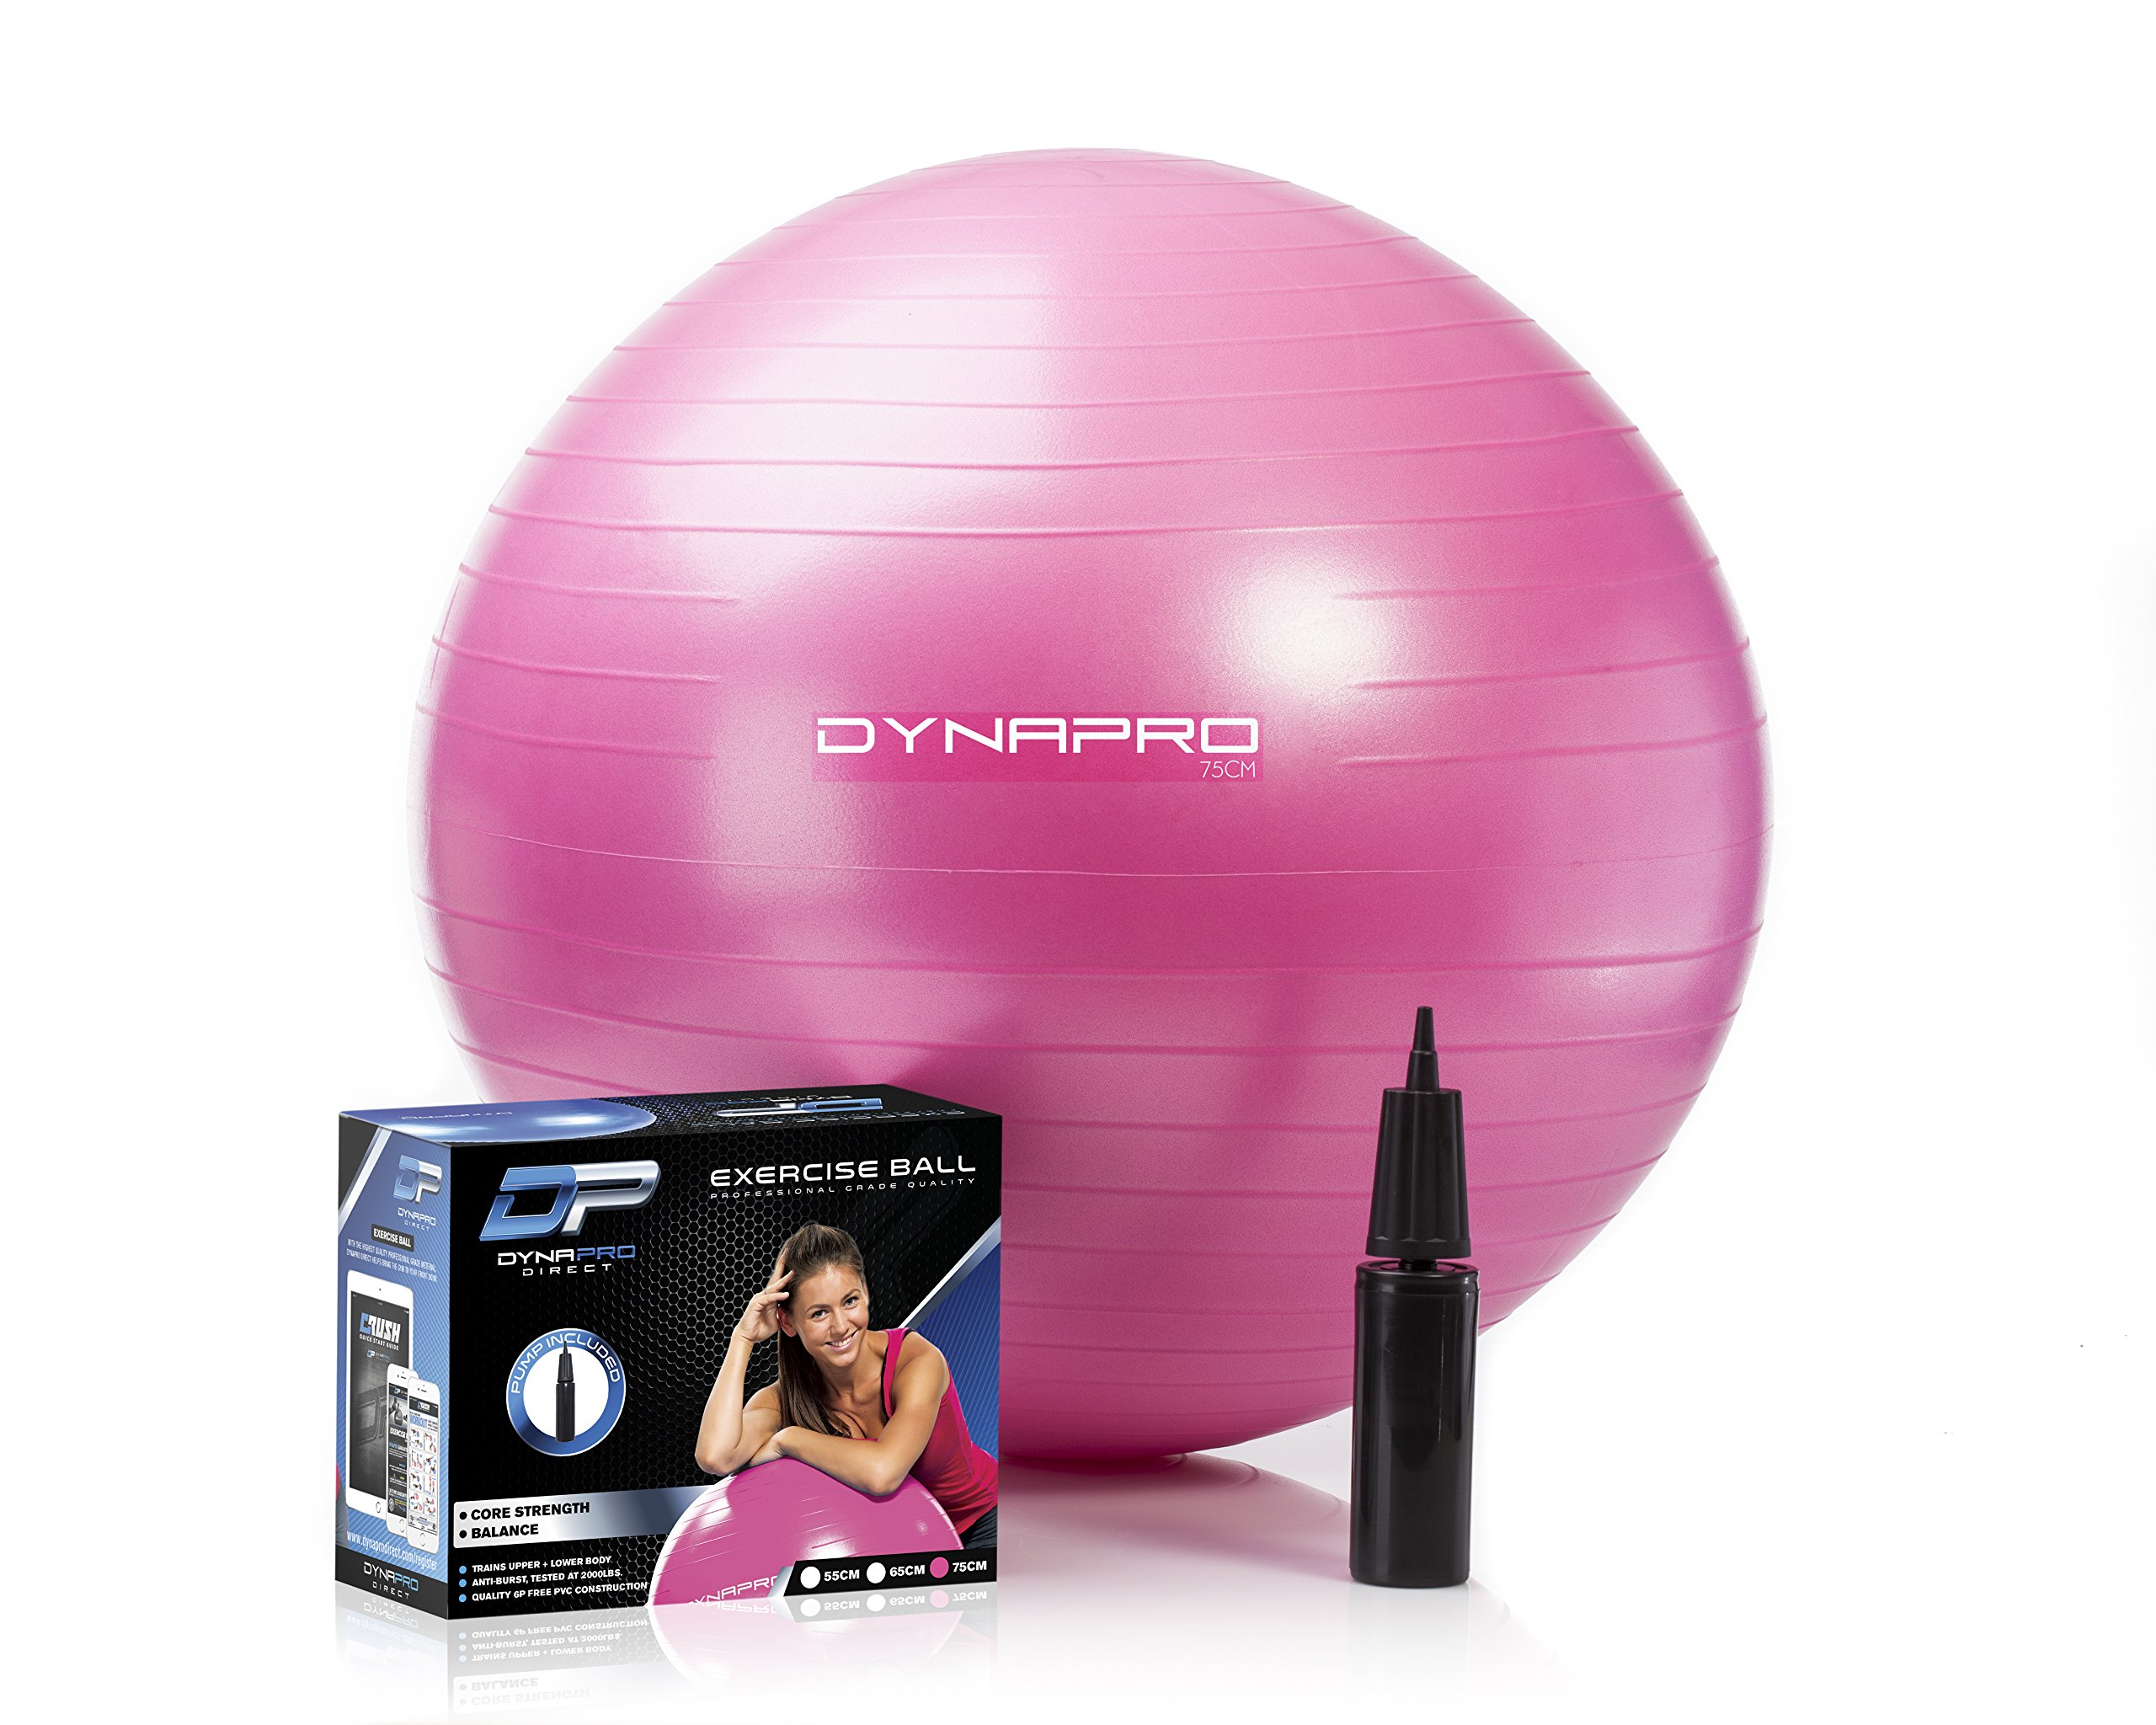 DYNAPRO Exercise Ball - 2,000 lbs Stability Ball - Professional Grade – Anti Burst Exercise Equipment for Home, Balance, Gym, Core Strength, Yoga, Fitness, Desk Chairs (Pink, 75 Centimeters) by DYNAPRO (Image #2)